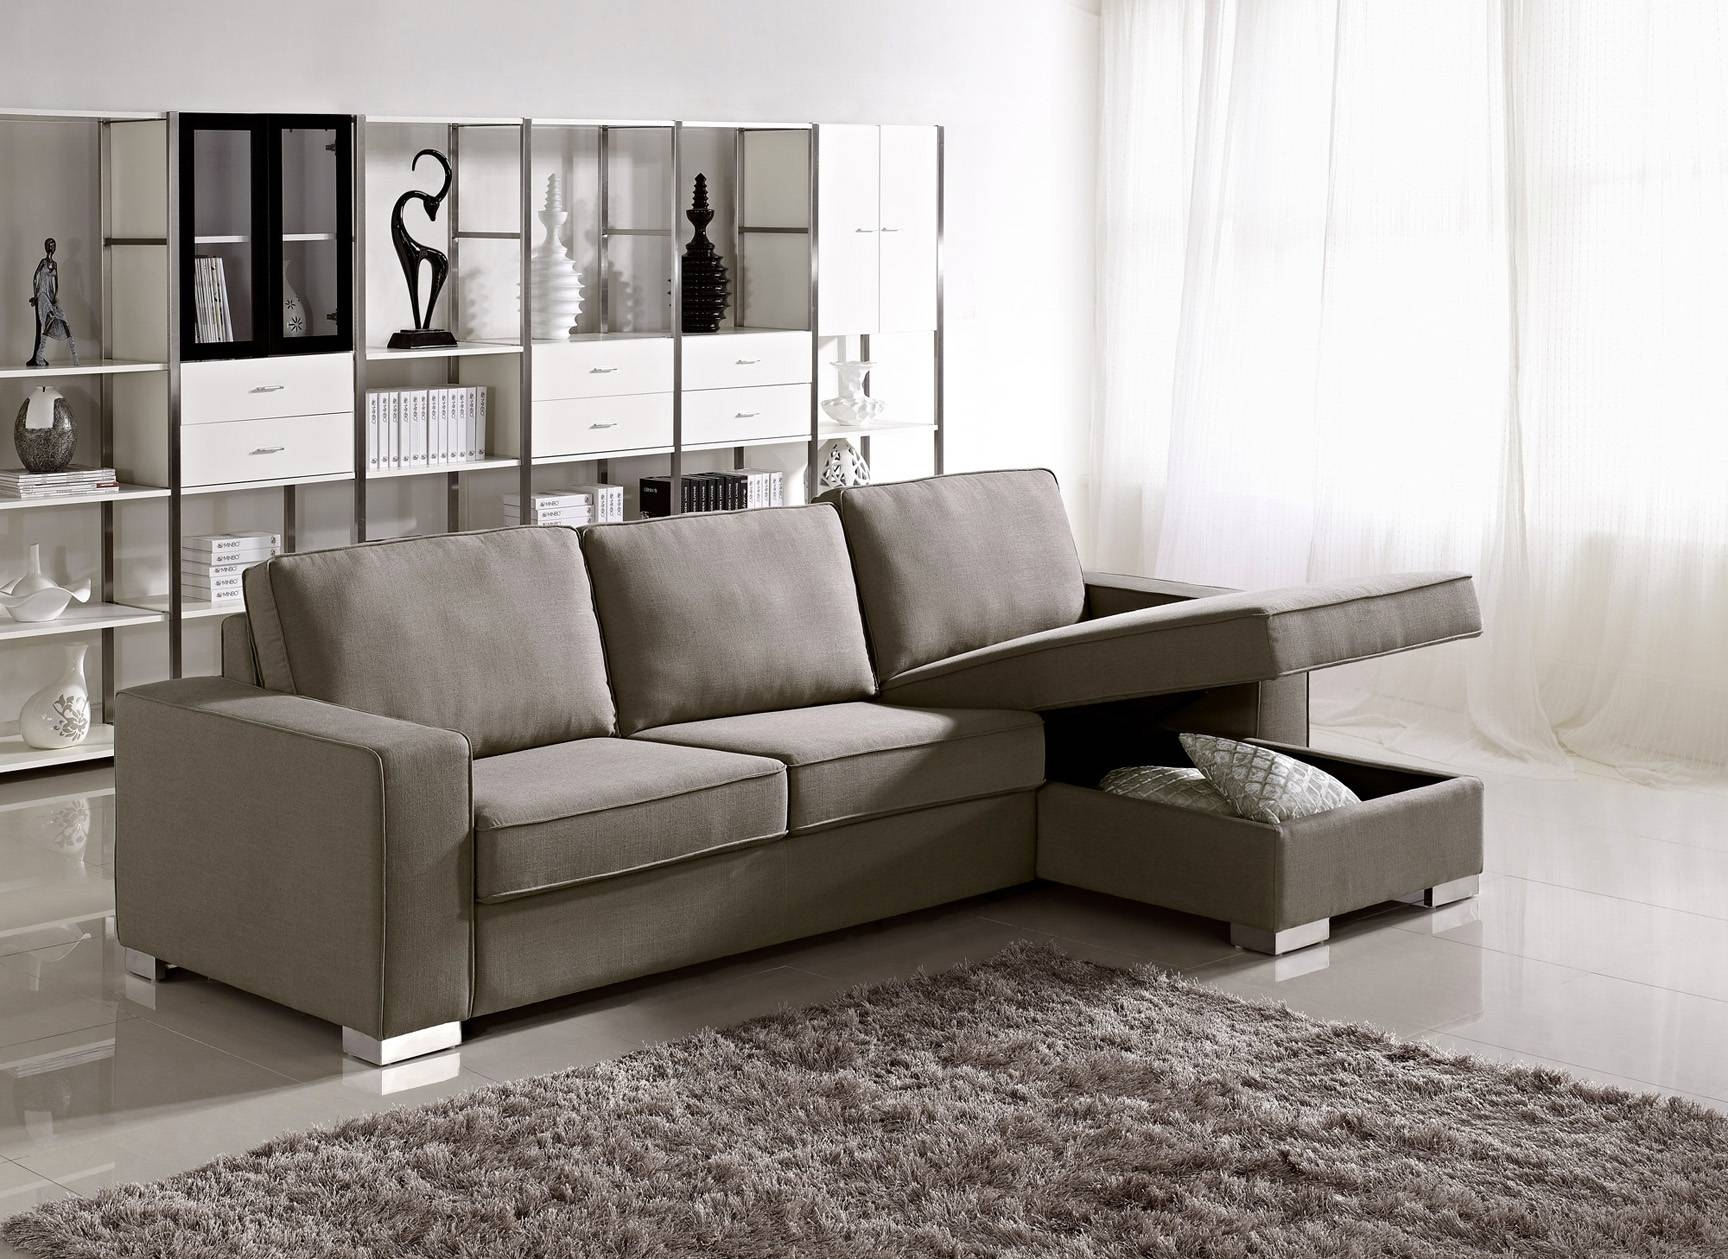 Small Sectional Sofa With Chaise Lounge - Tourdecarroll regarding Small Sofas With Chaise Lounge (Image 11 of 15)